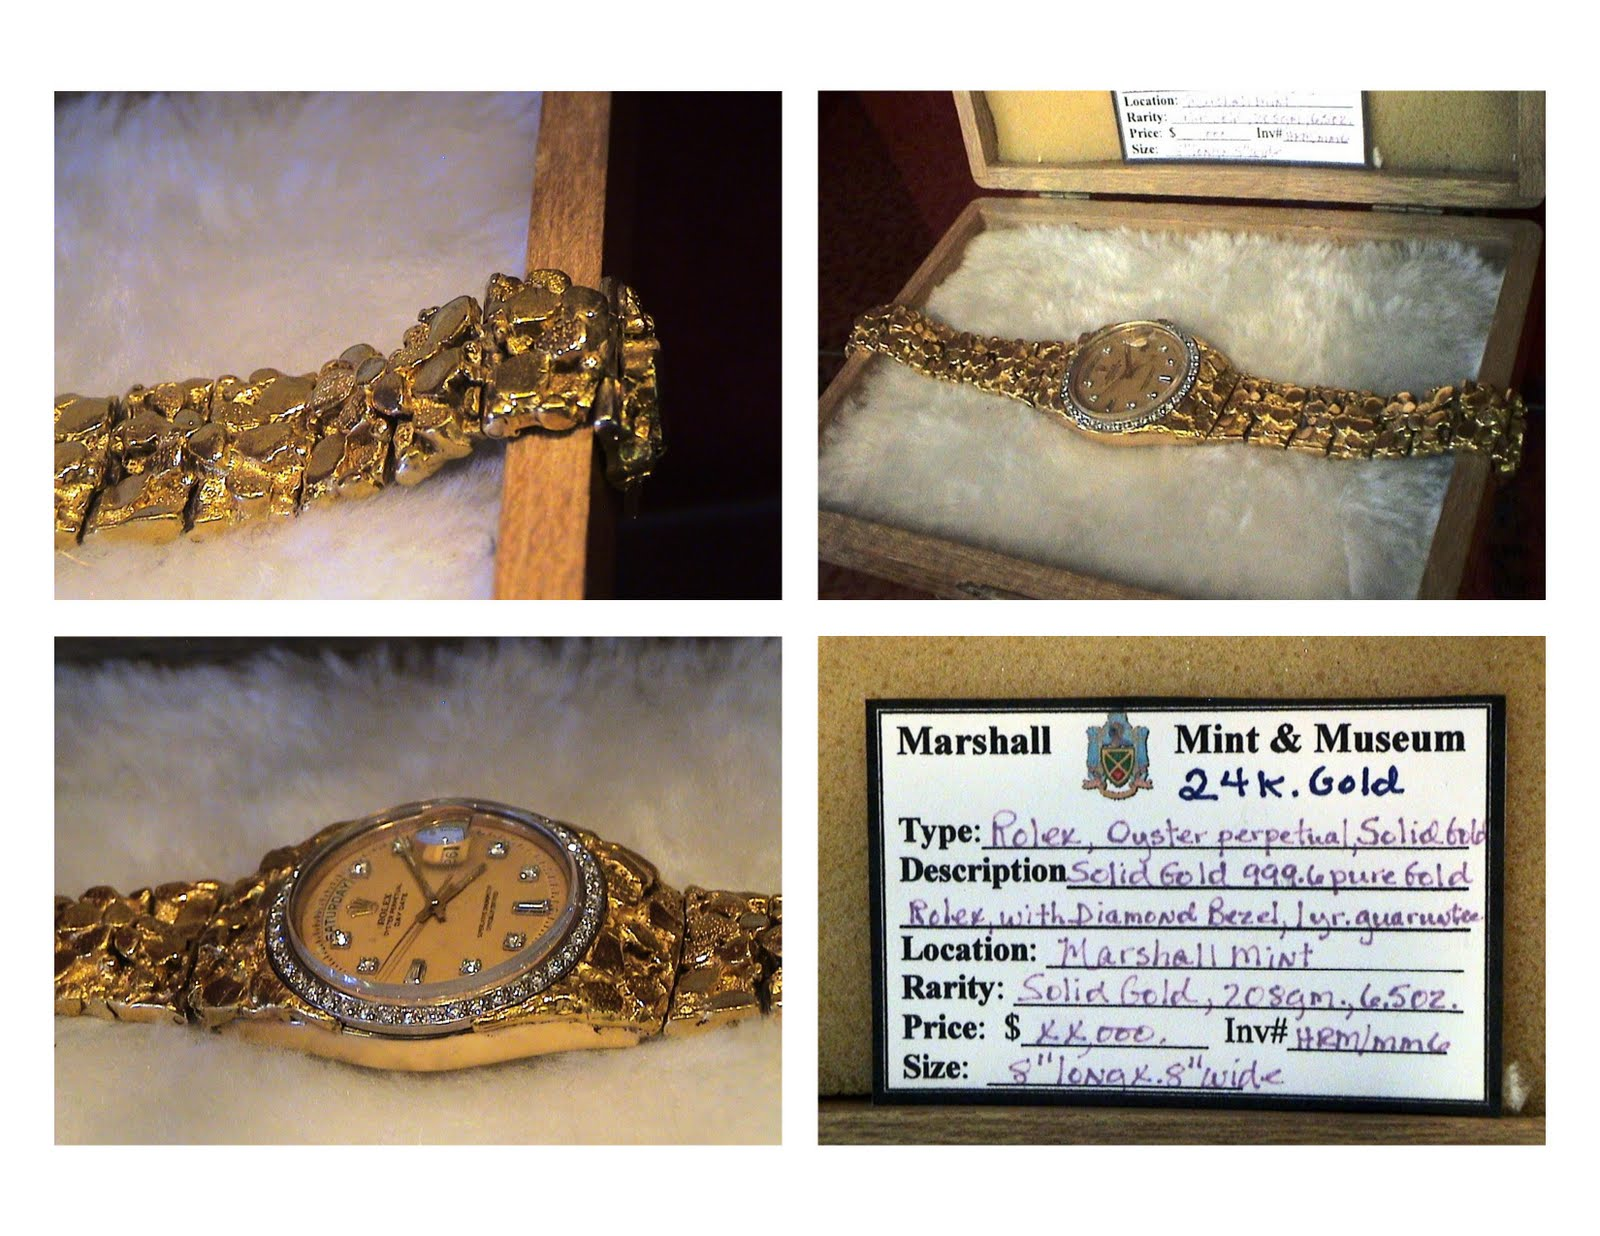 Comstock Ore Mm6 Rolex Watch 208g Of 999 6 Pure Gold Nuggets